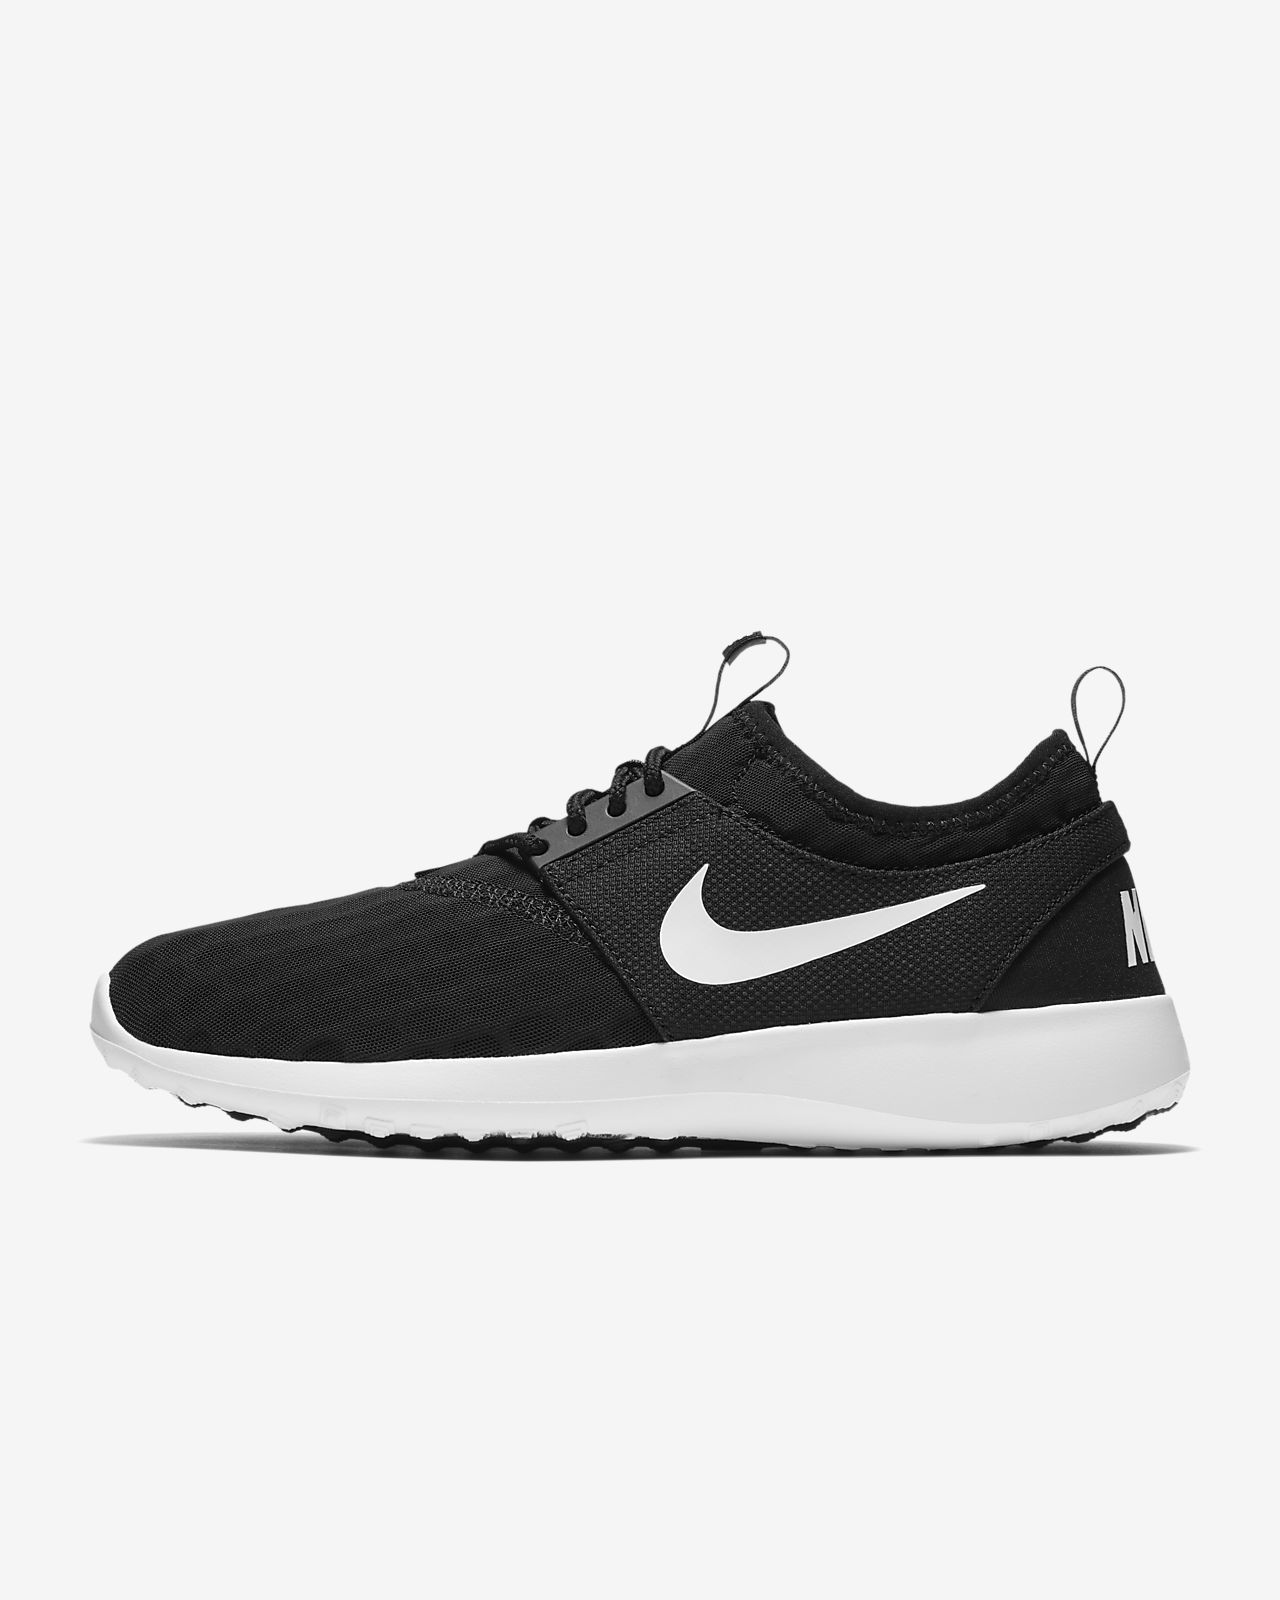 Nike Shoes For Sale At Low Prices Canada Shoes 2016 Nike